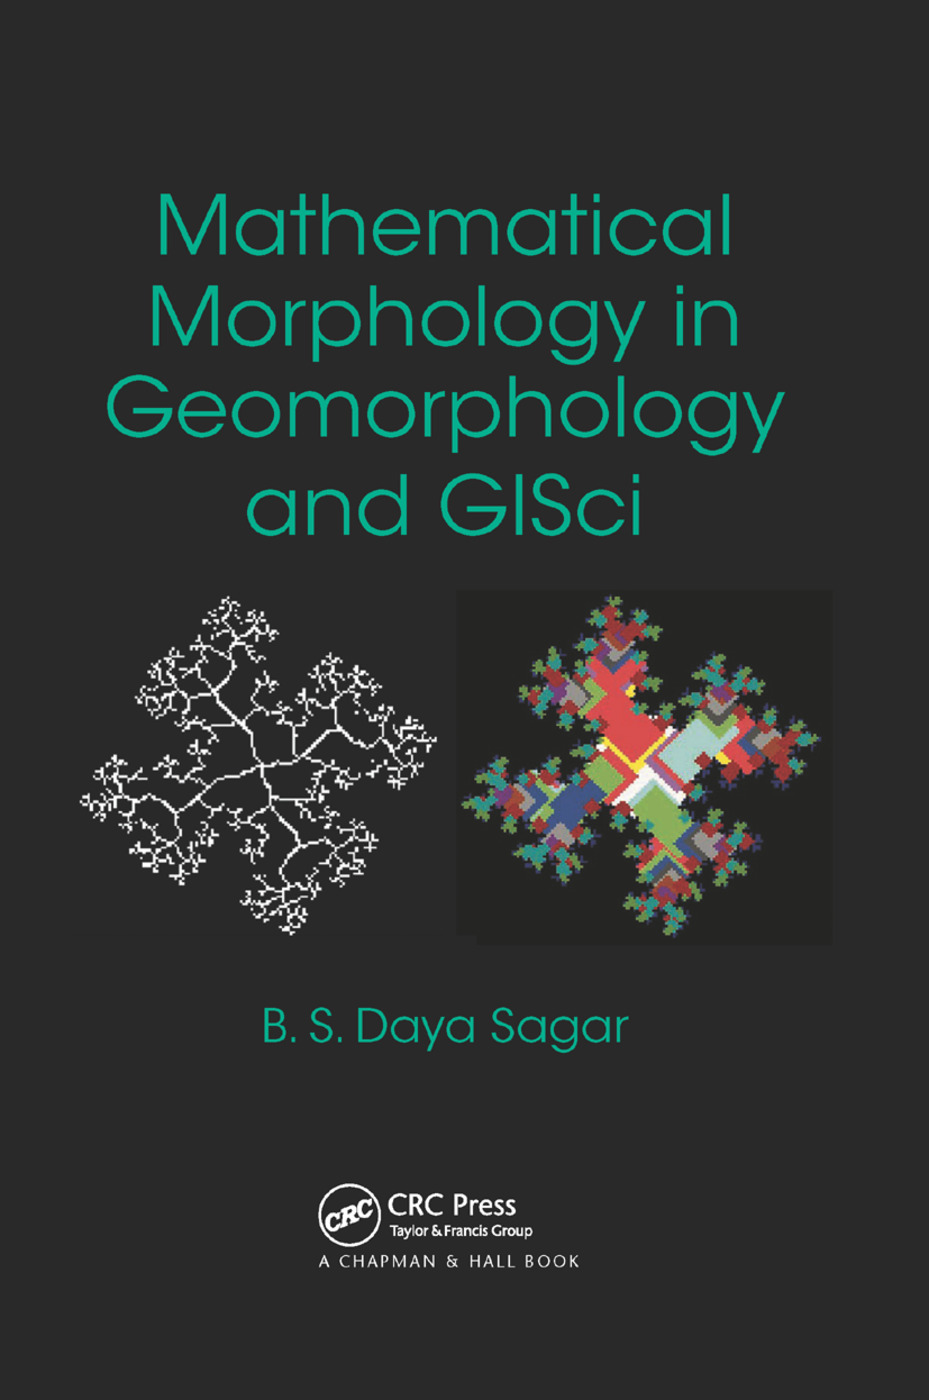 Mathematical Morphology in Geomorphology and GISci book cover